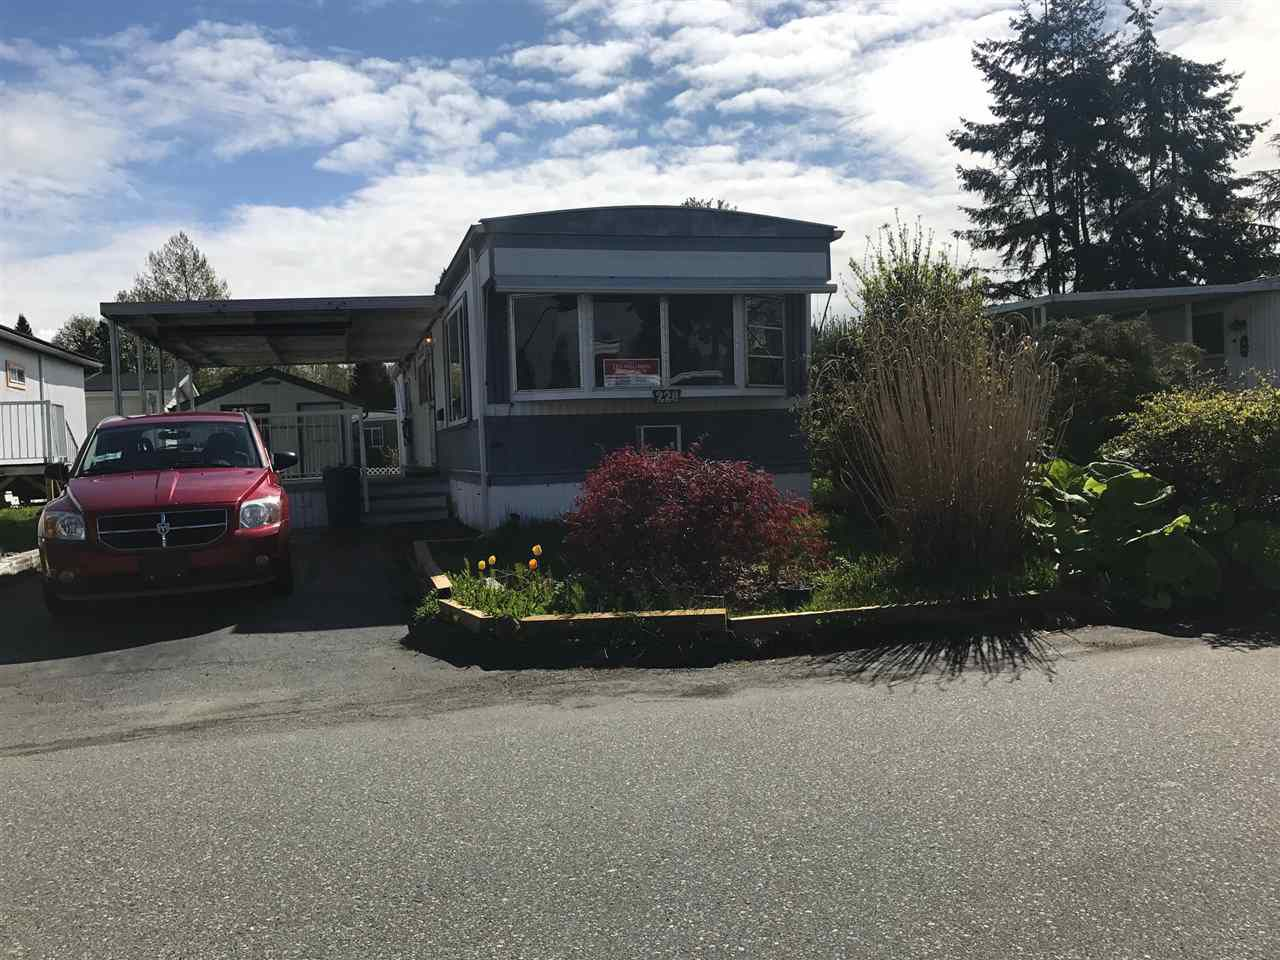 """Main Photo: 228 1840 160 Street in Surrey: King George Corridor Manufactured Home for sale in """"Breakaway Bays"""" (South Surrey White Rock)  : MLS®# R2133731"""